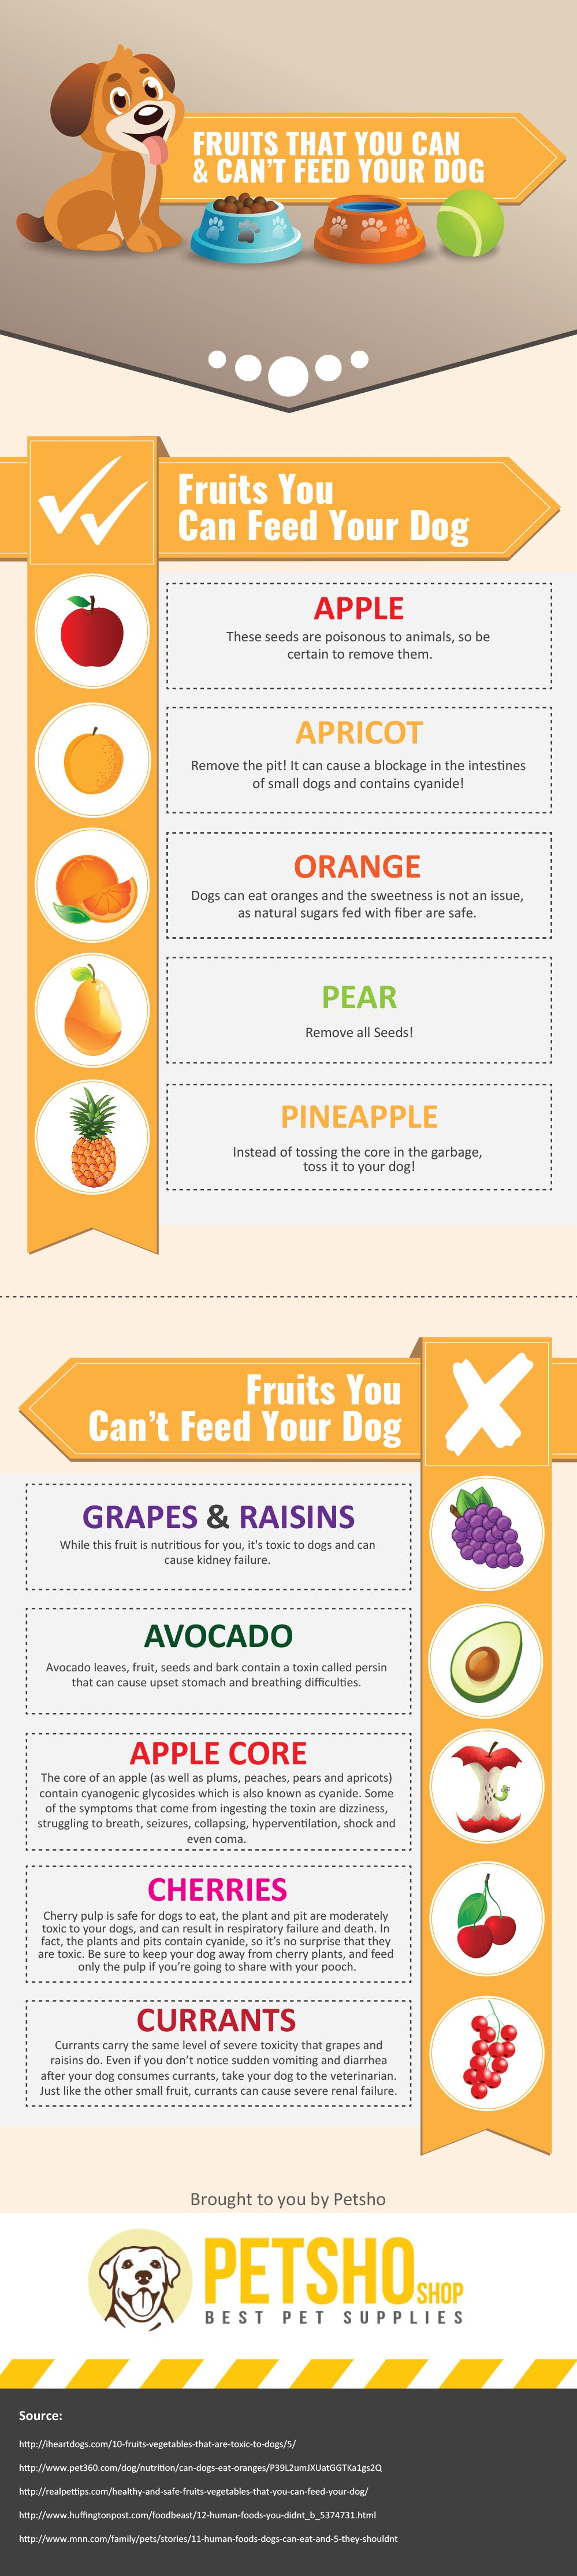 Fruits You Can and Can , fruits you can feed your dog